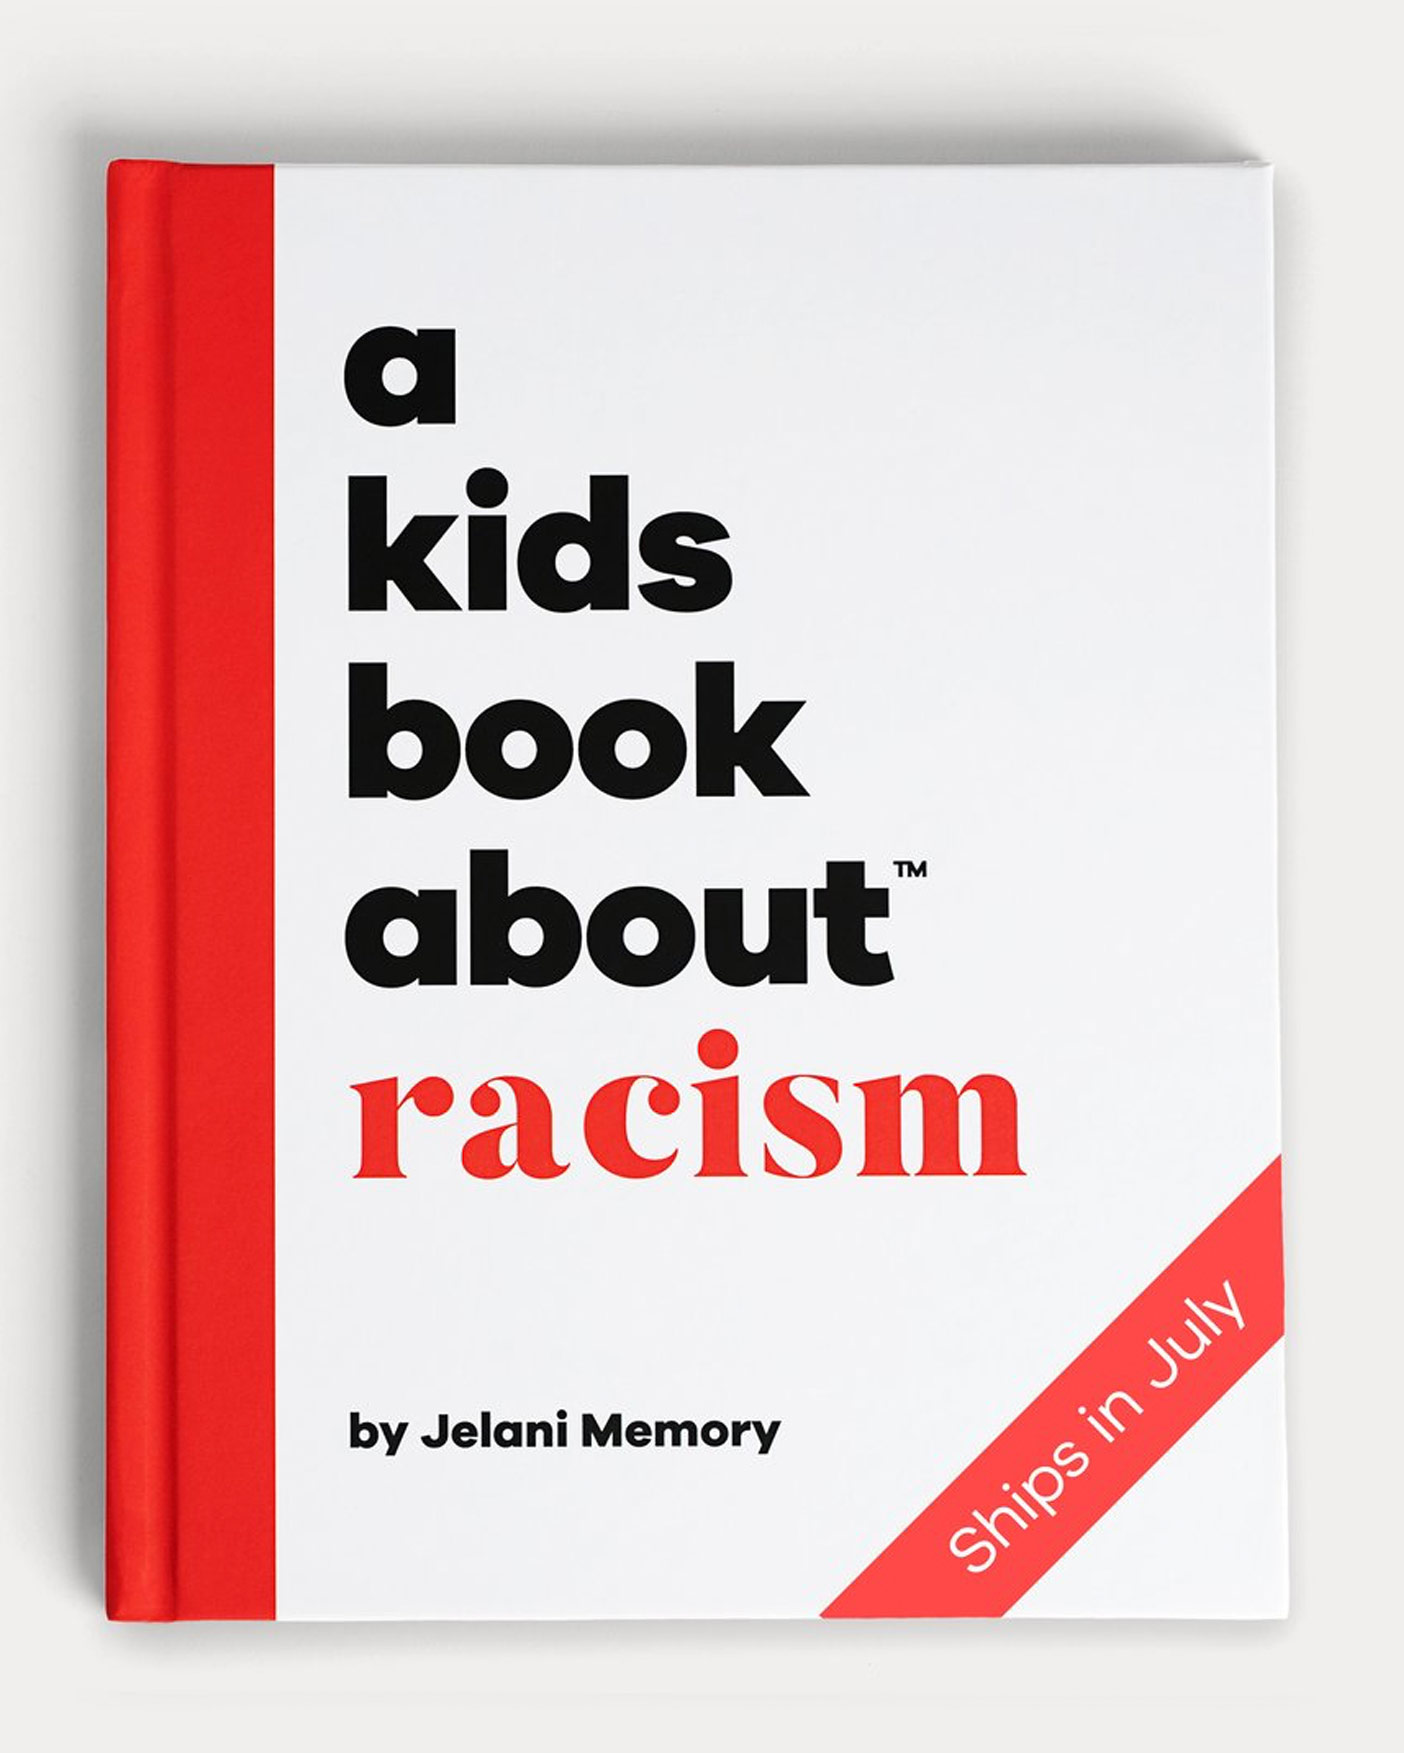 Akidsbookaboutracism